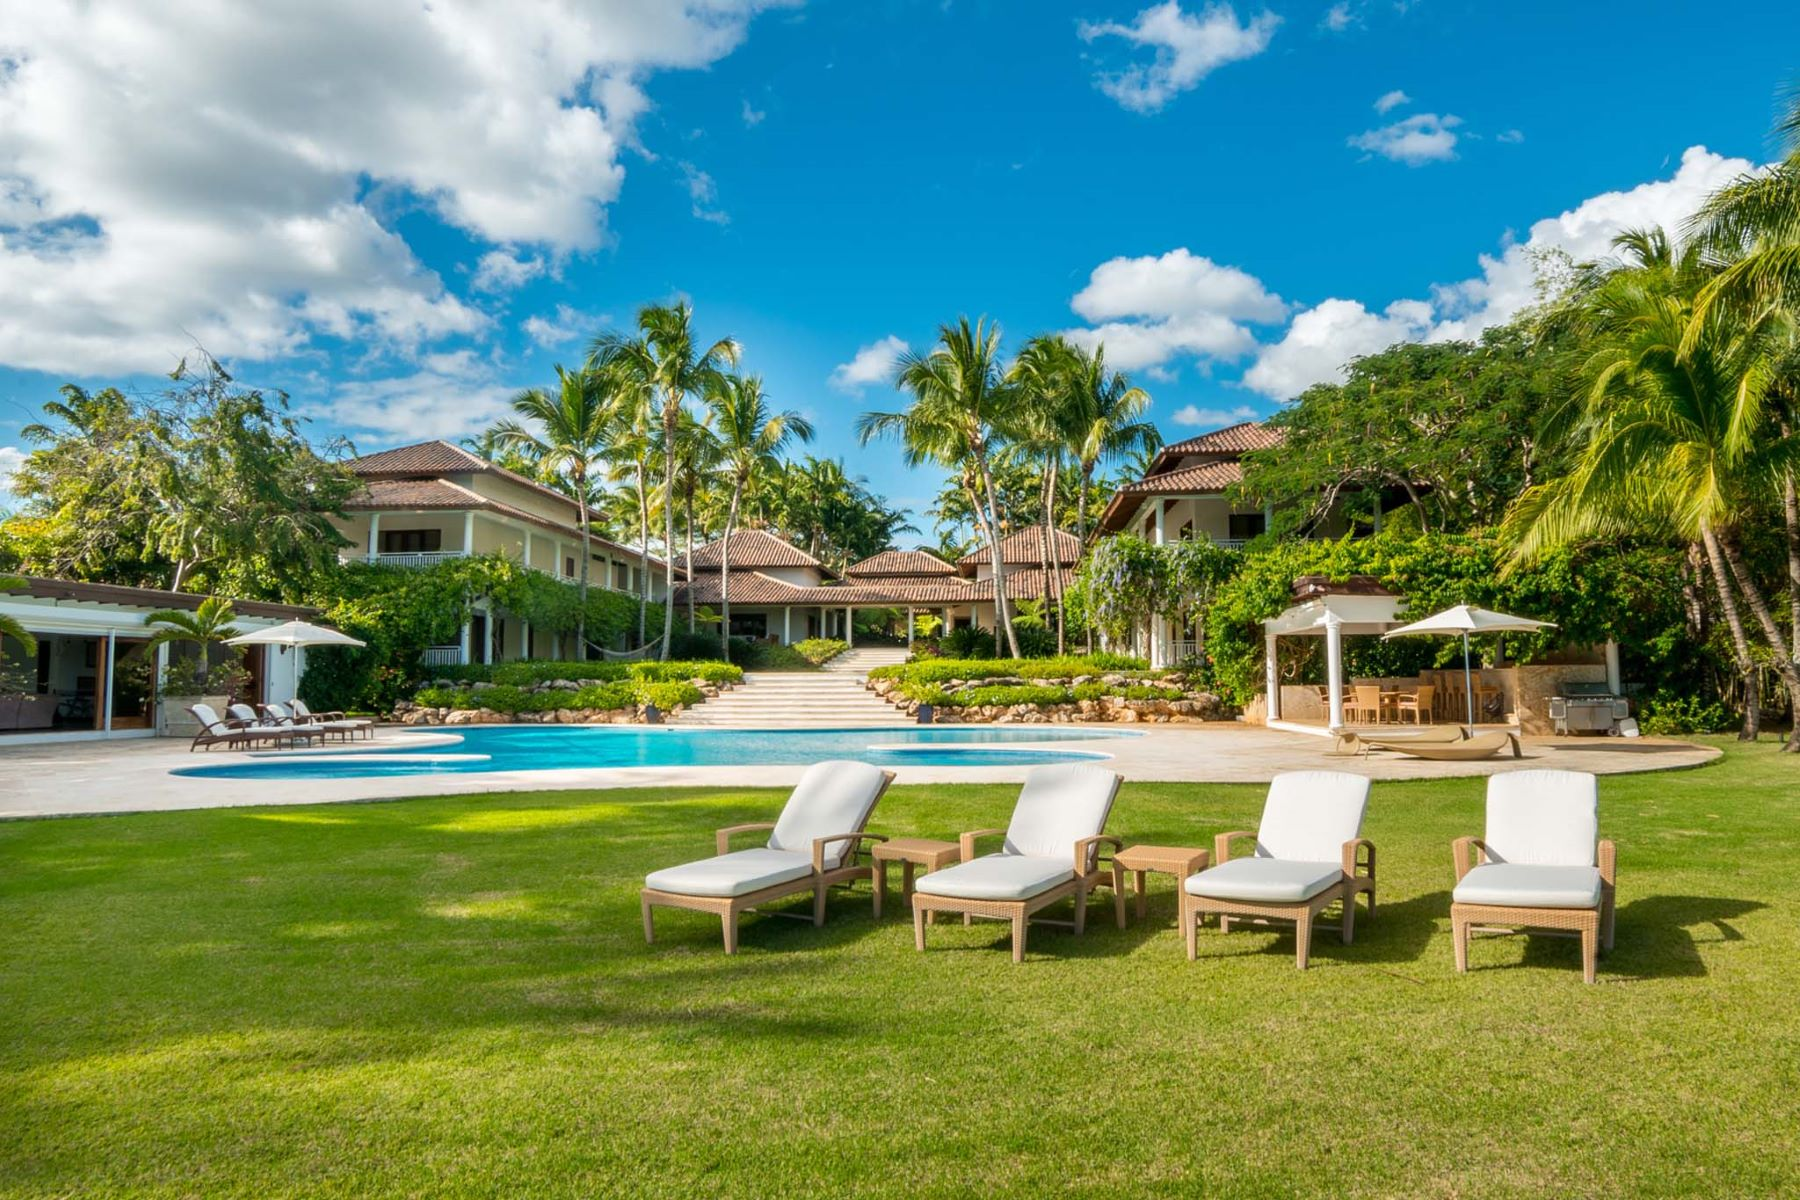 Single Family Home for Sale at Majestic Caribbean Estate boasting Extraordinary Ocean Views Casa De Campo, La Romana Dominican Republic